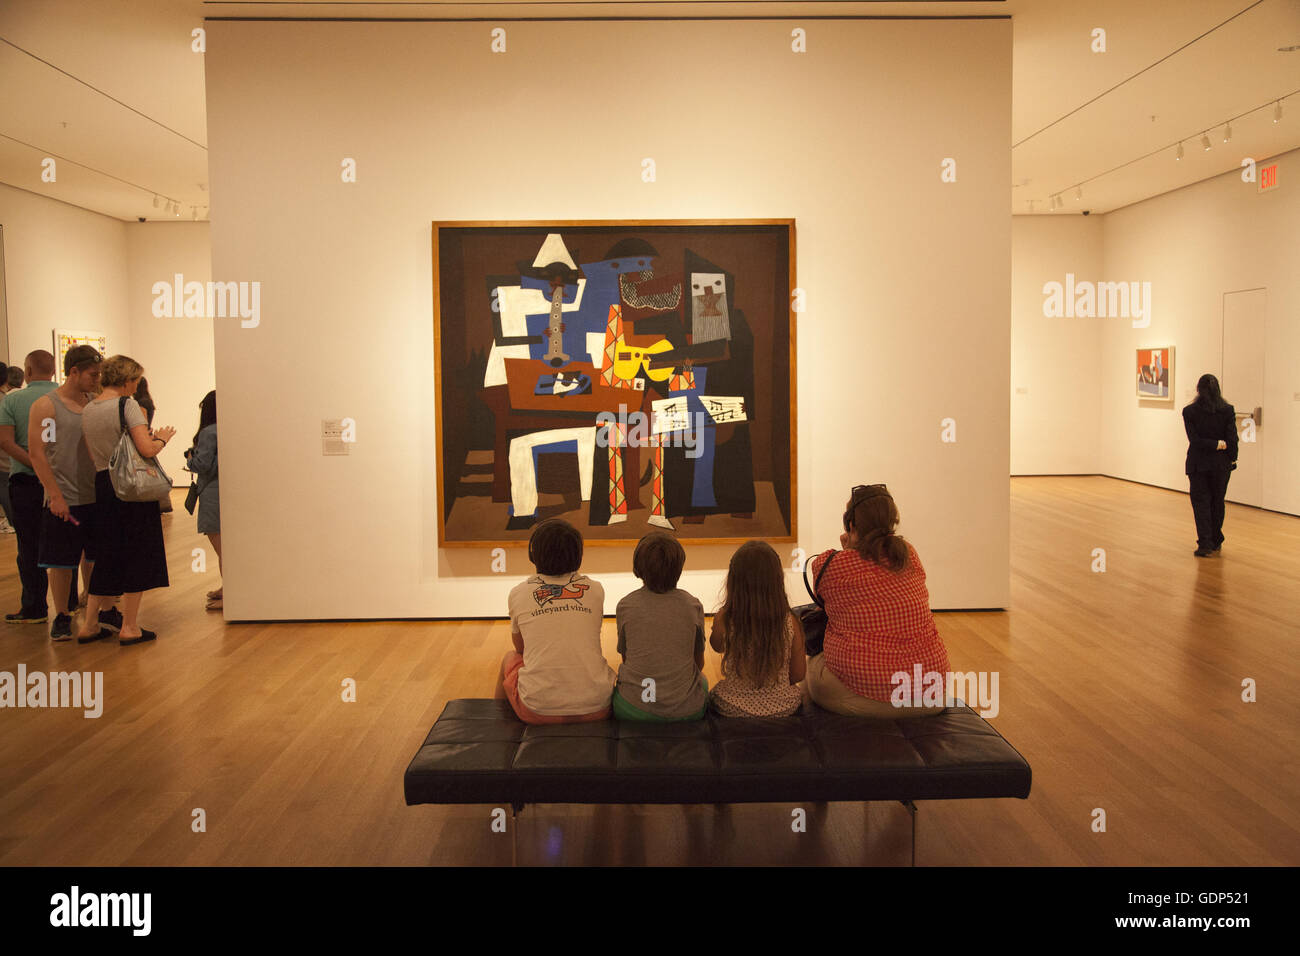 Pablo Picasso Three Musicians At The Museum Of Modern Art